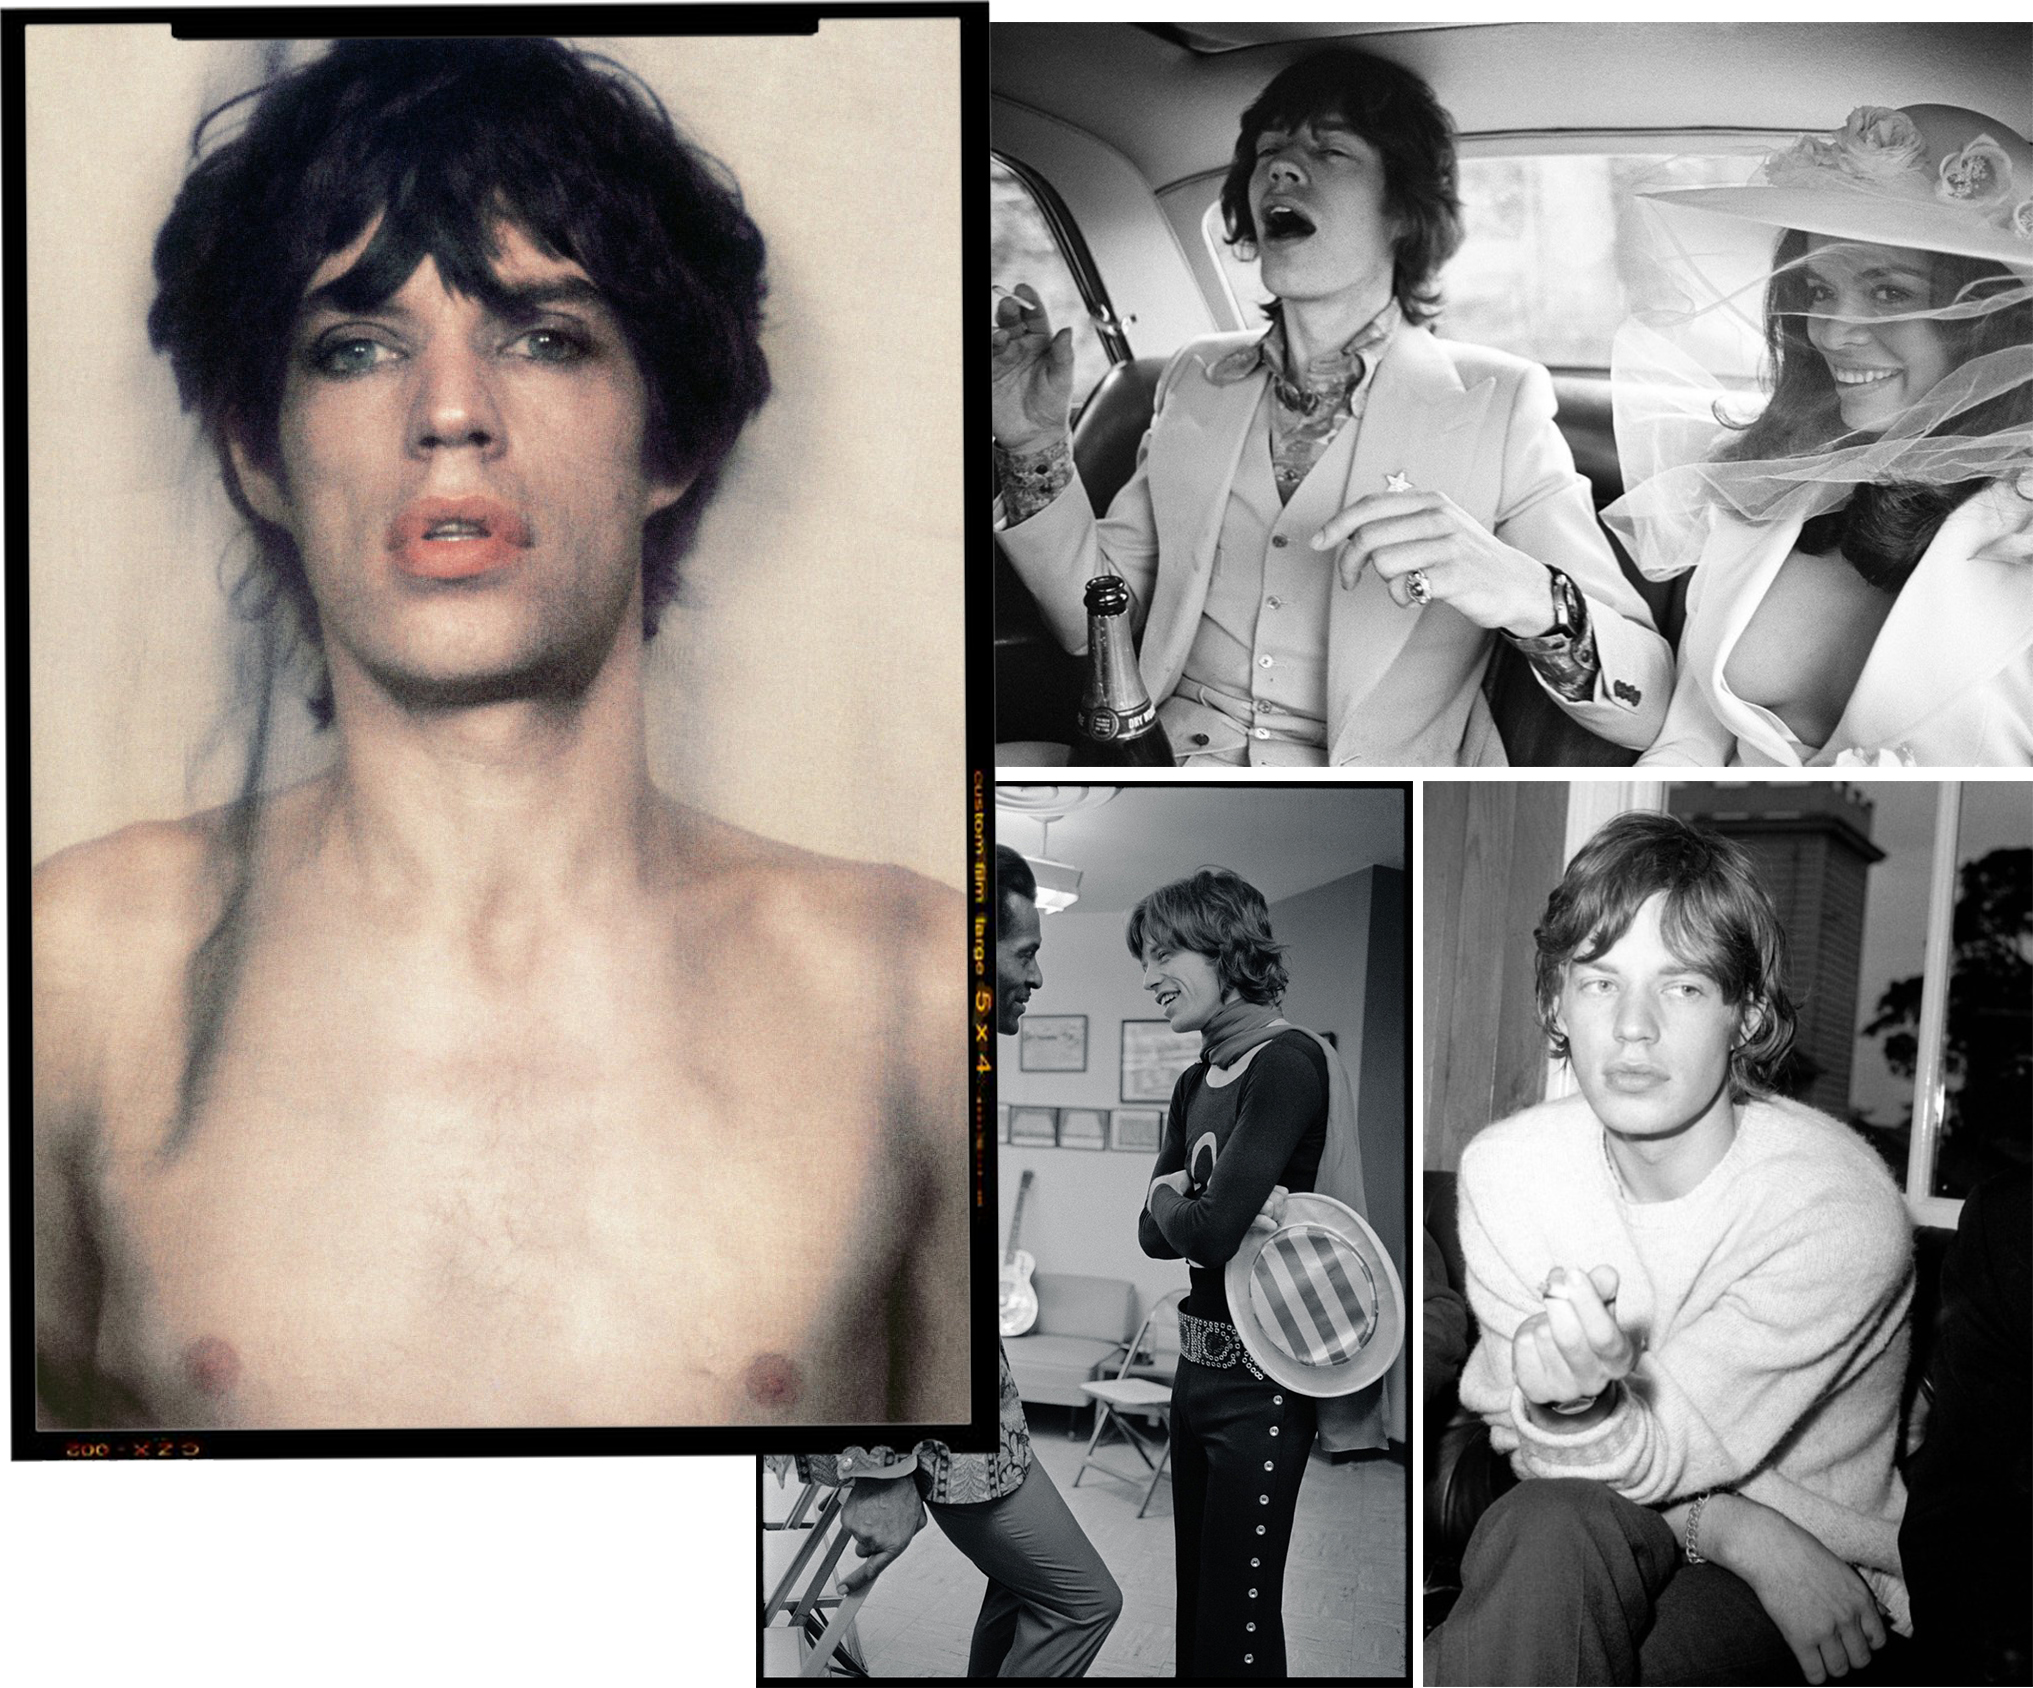 Most Stylish Musician, Mick Jagger